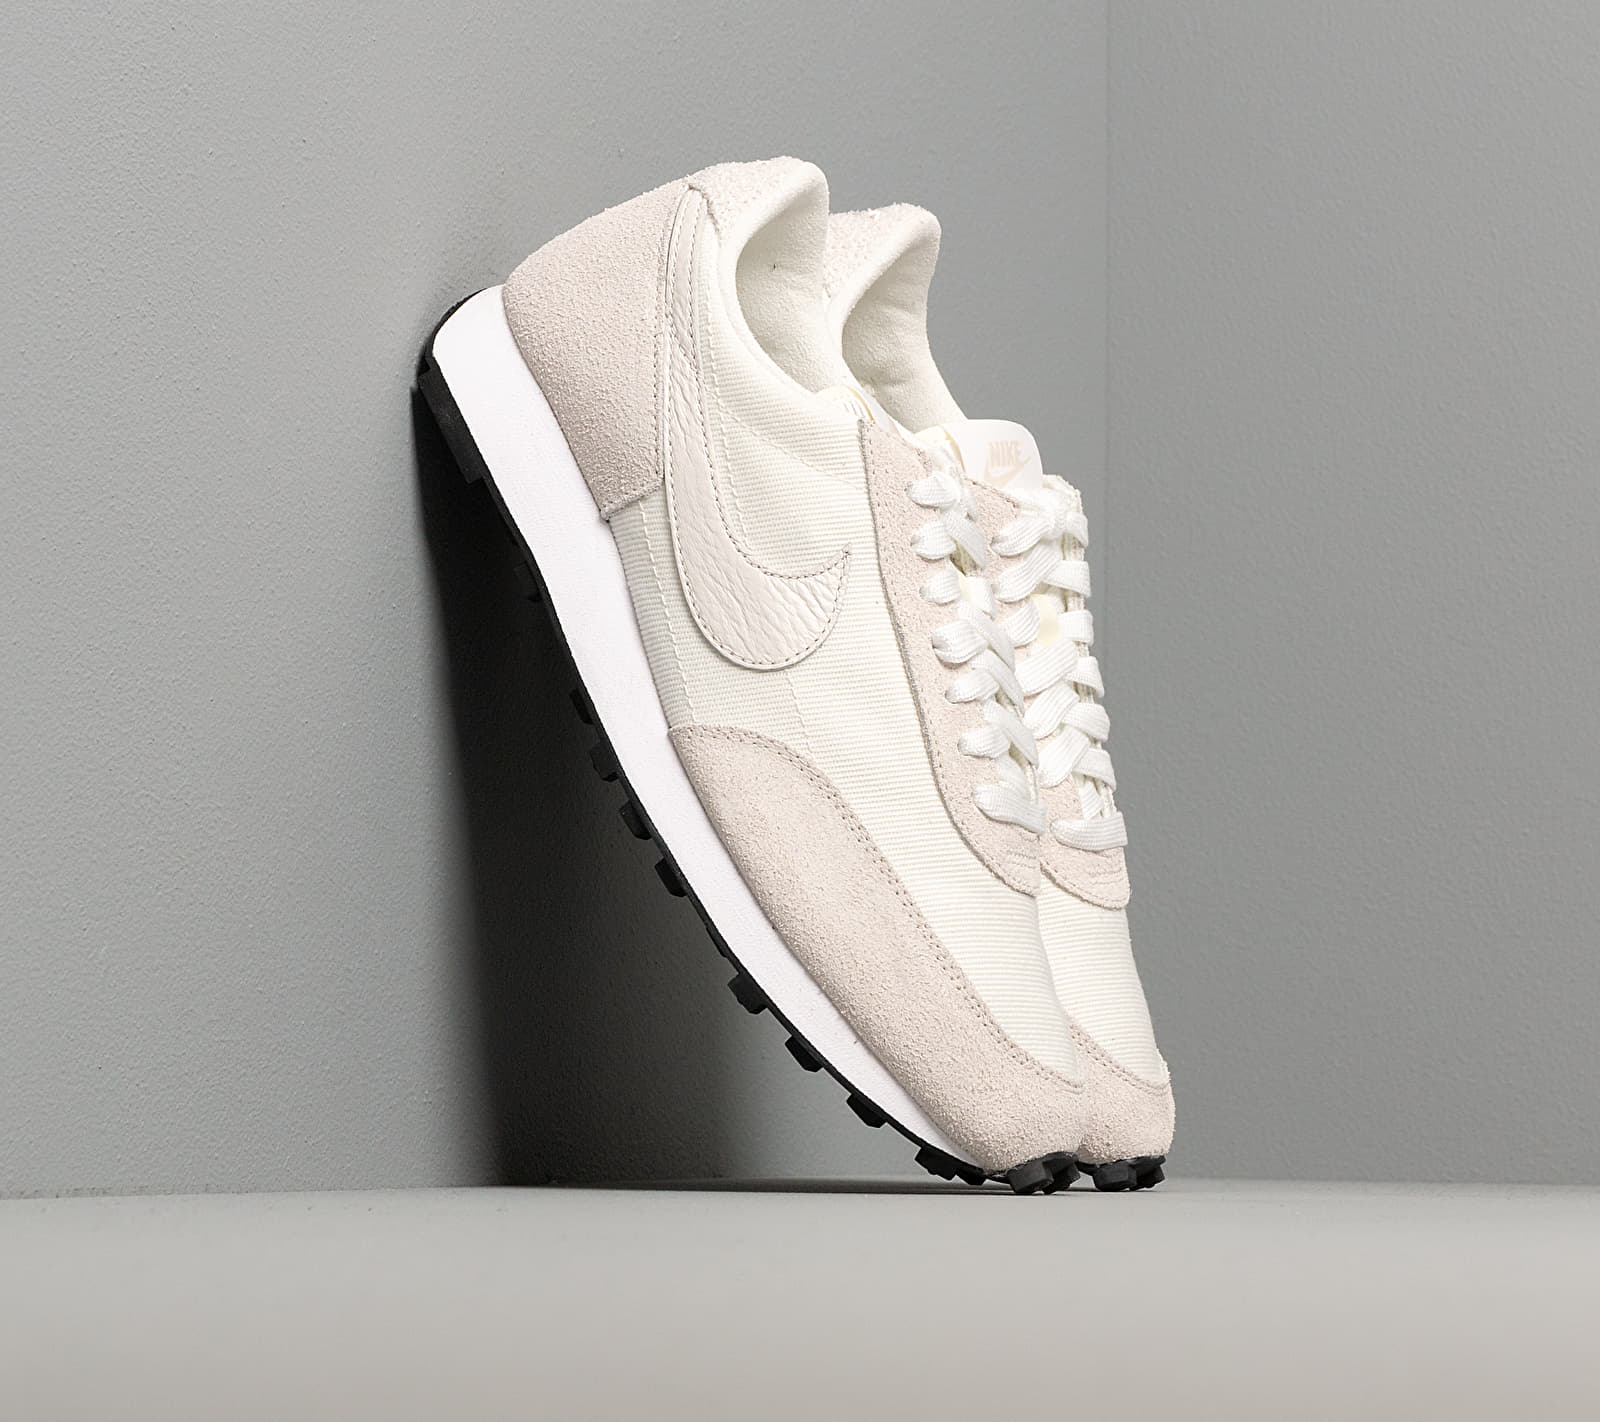 Nike Daybreak Sail/ Phantom-White-Black EUR 45